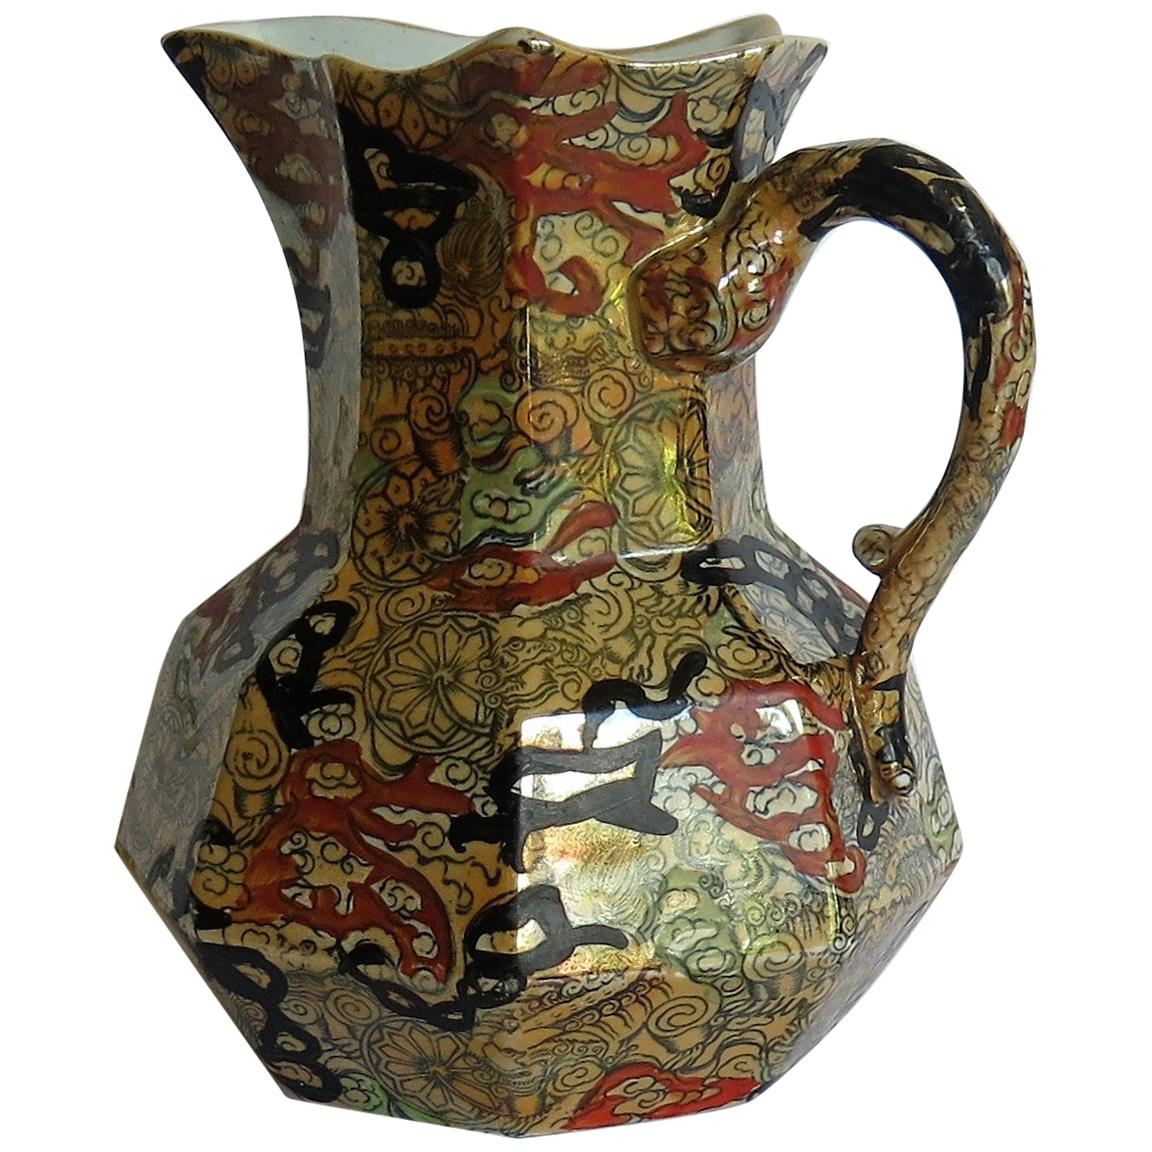 Antique And Vintage Pitchers 1 242 For Sale At 1stdibs